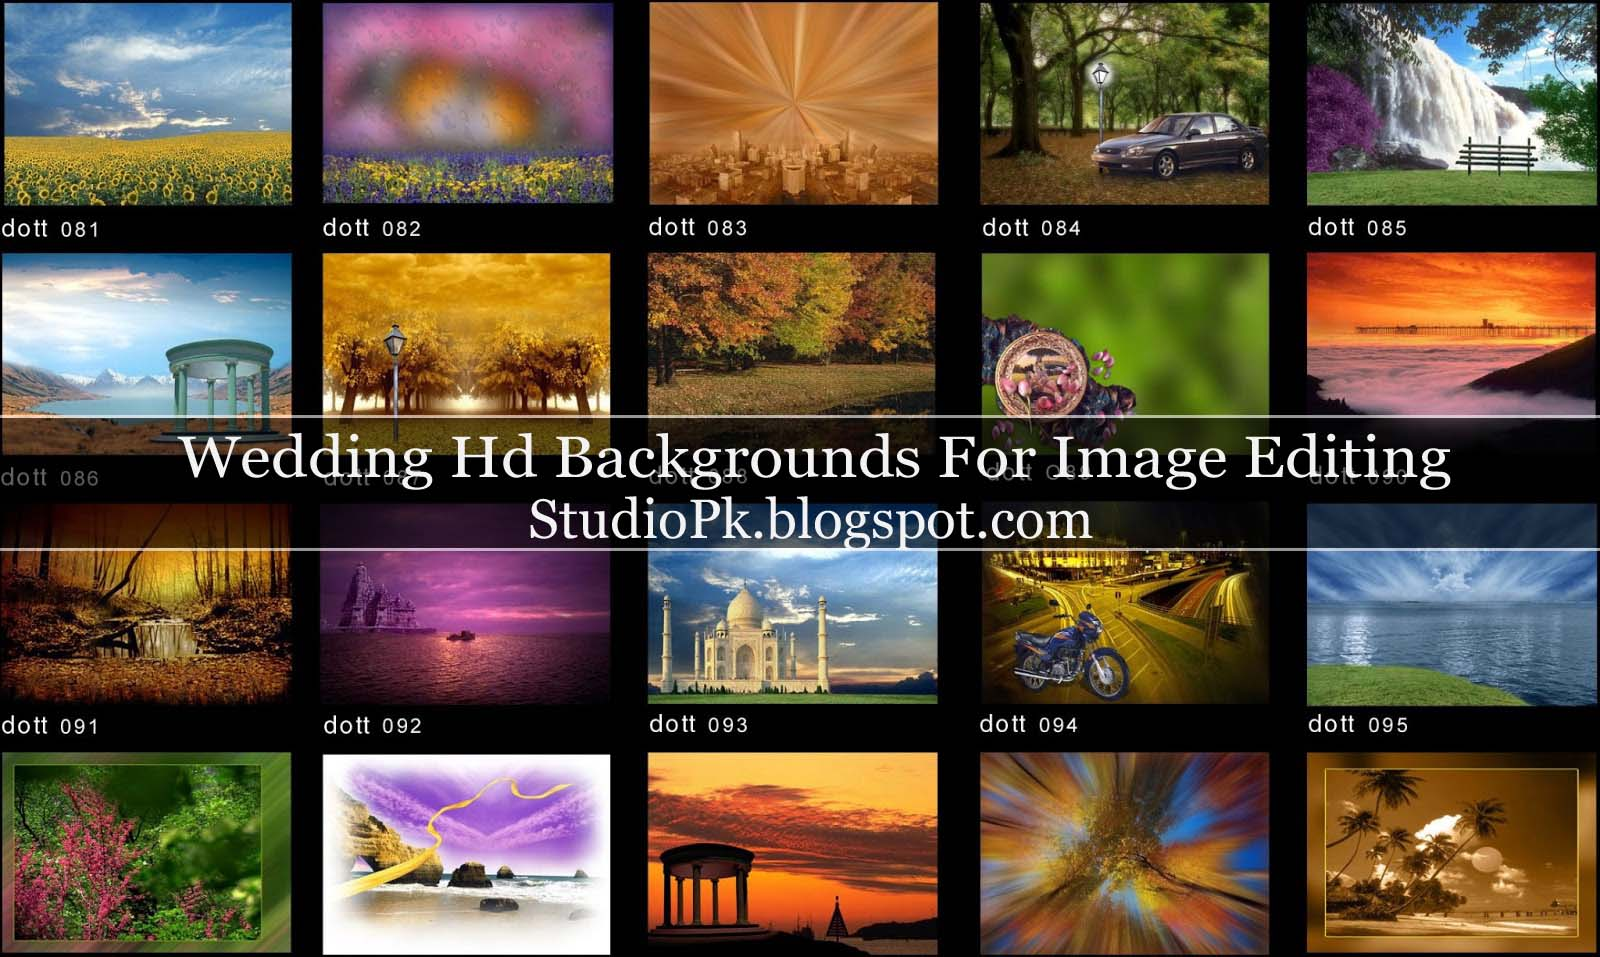 Hd Backgrounds For Photo Editing: Wedding Hd Backgrounds For Image Editing